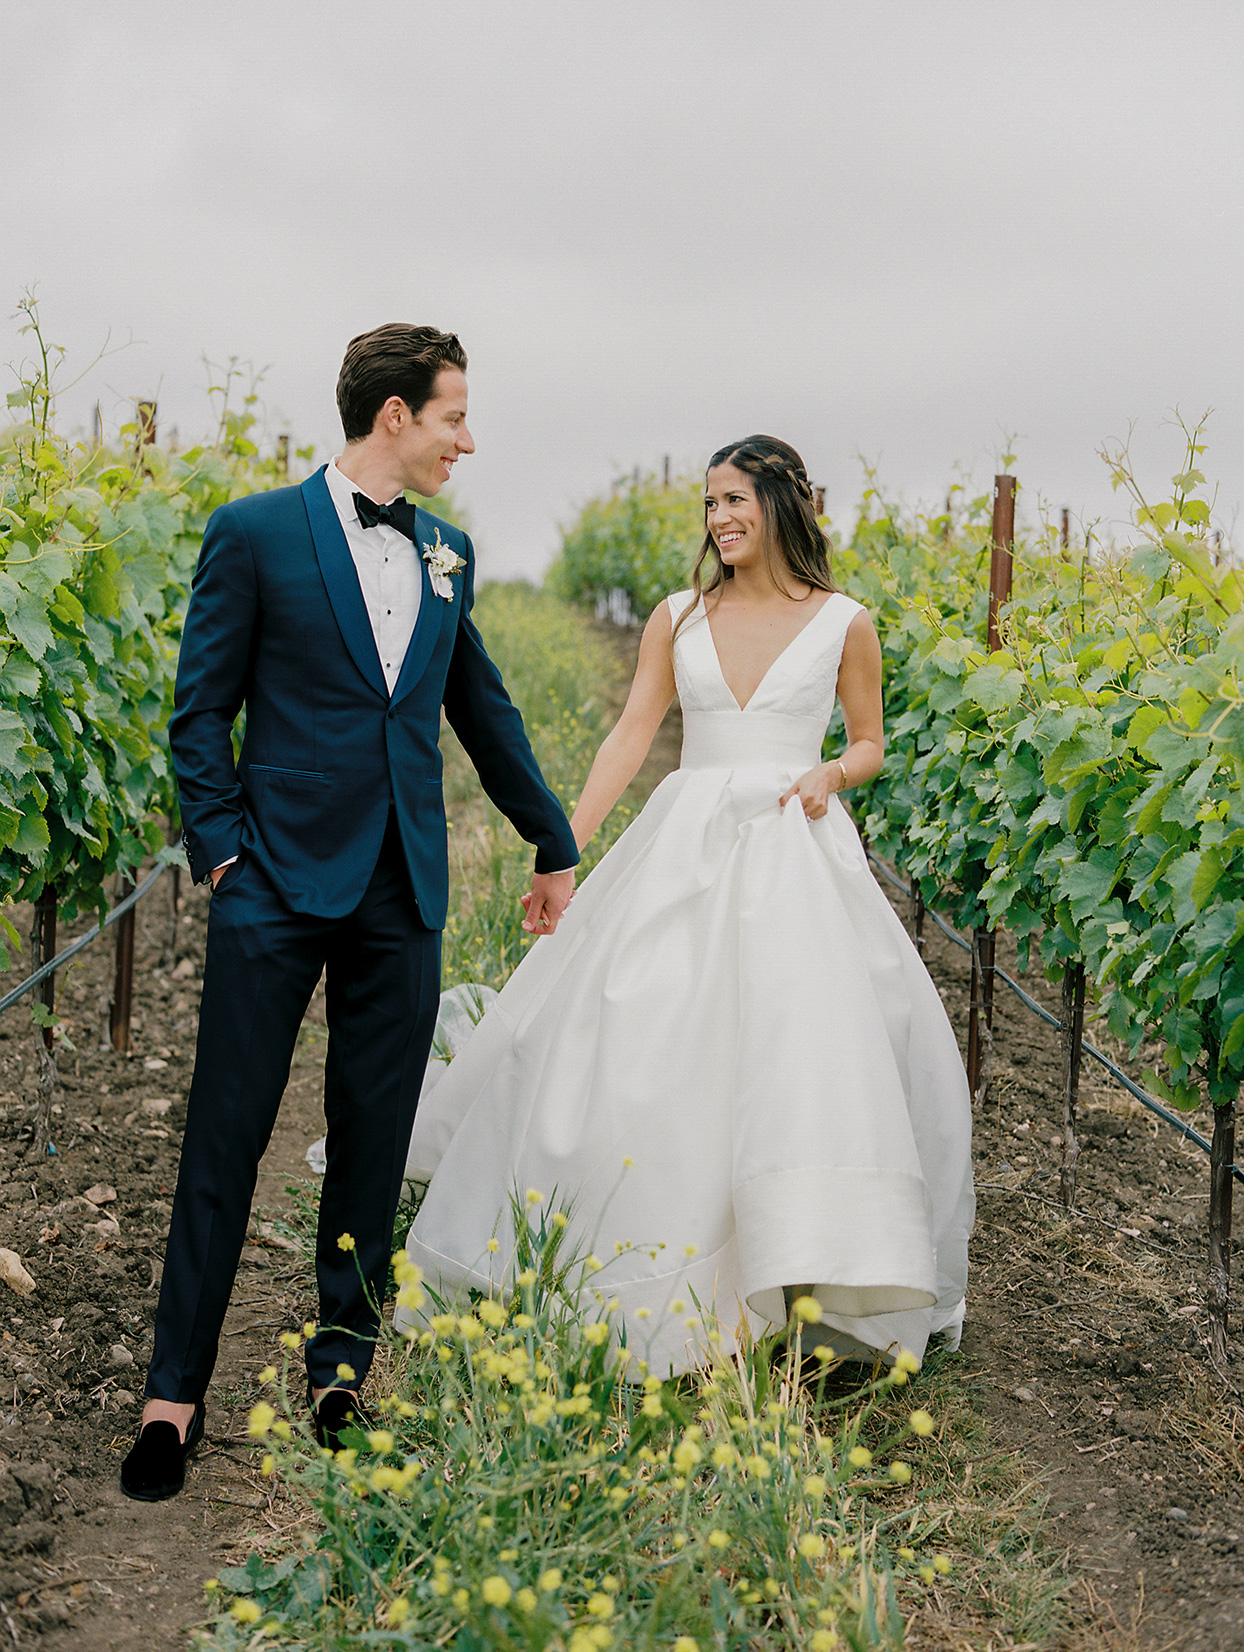 mika steve wedding couple on path in vineyard